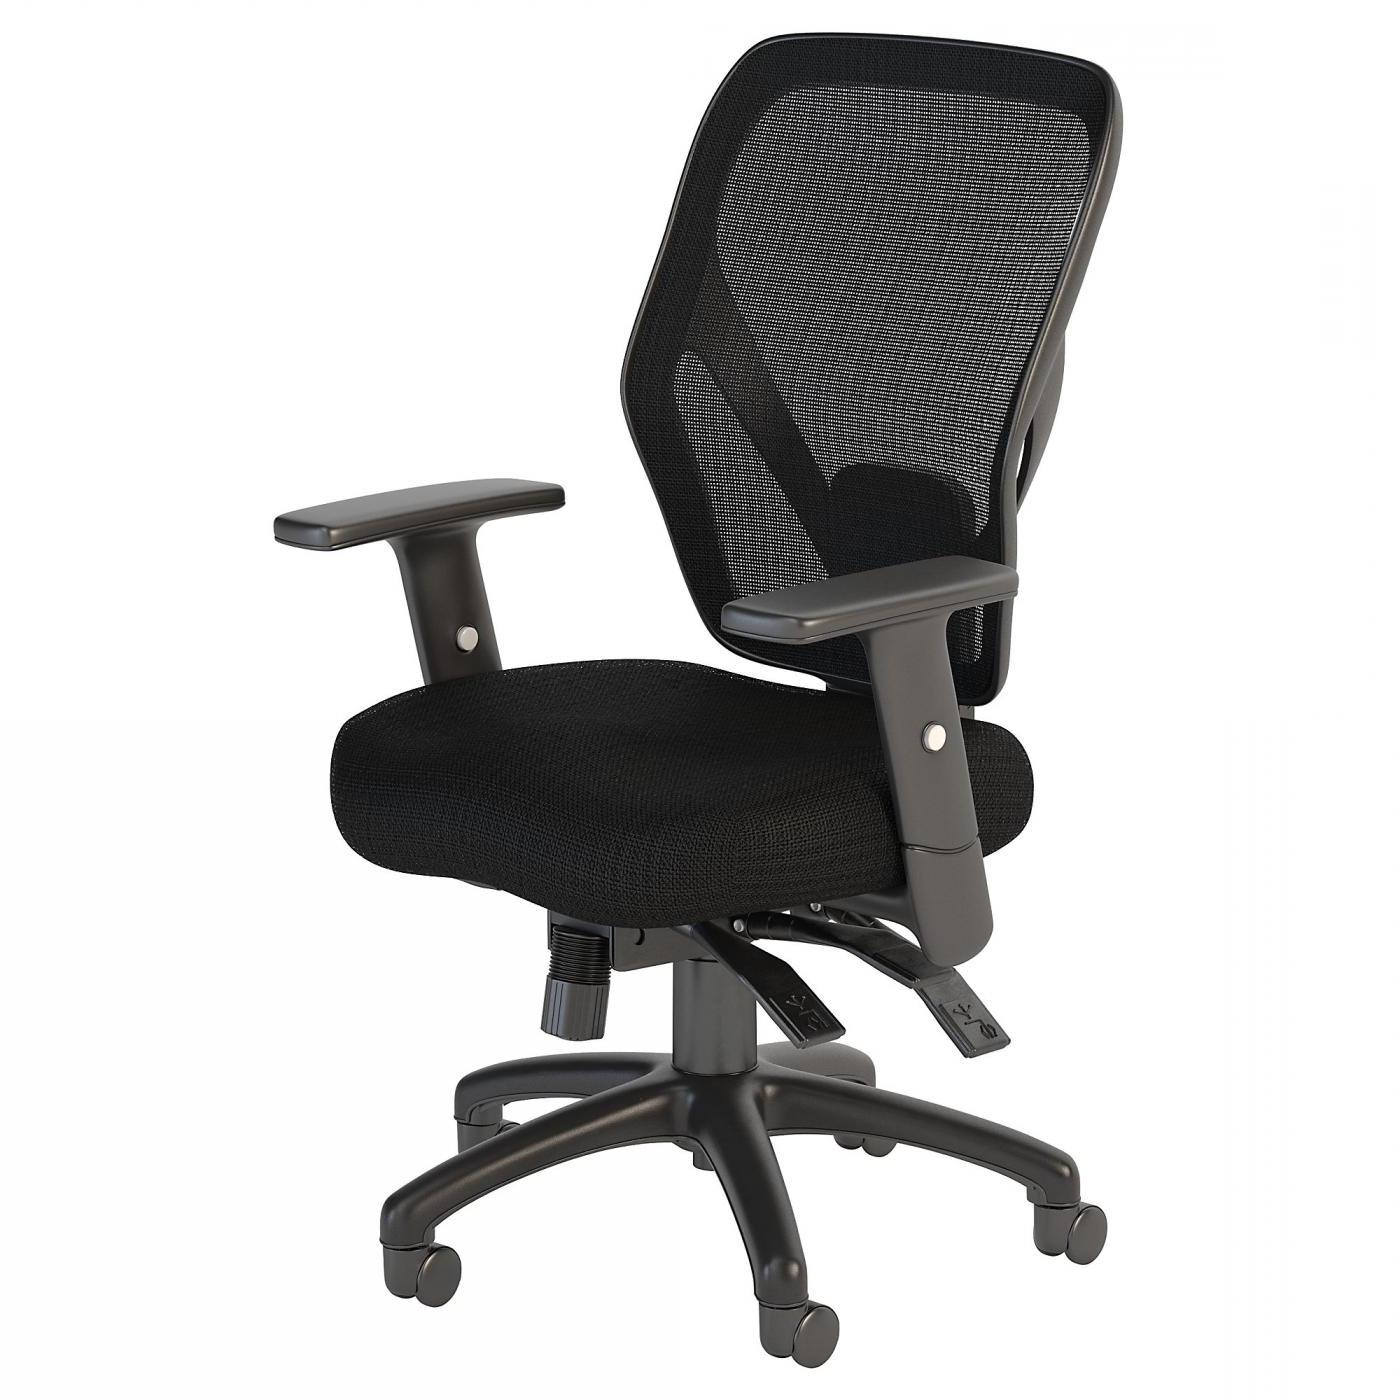 </b></font><b>BUSH BUSINESS FURNITURE CORPORATE MID BACK MULTIFUNCTION MESH OFFICE CHAIR. FREE SHIPPING</font>. </b></font></b>